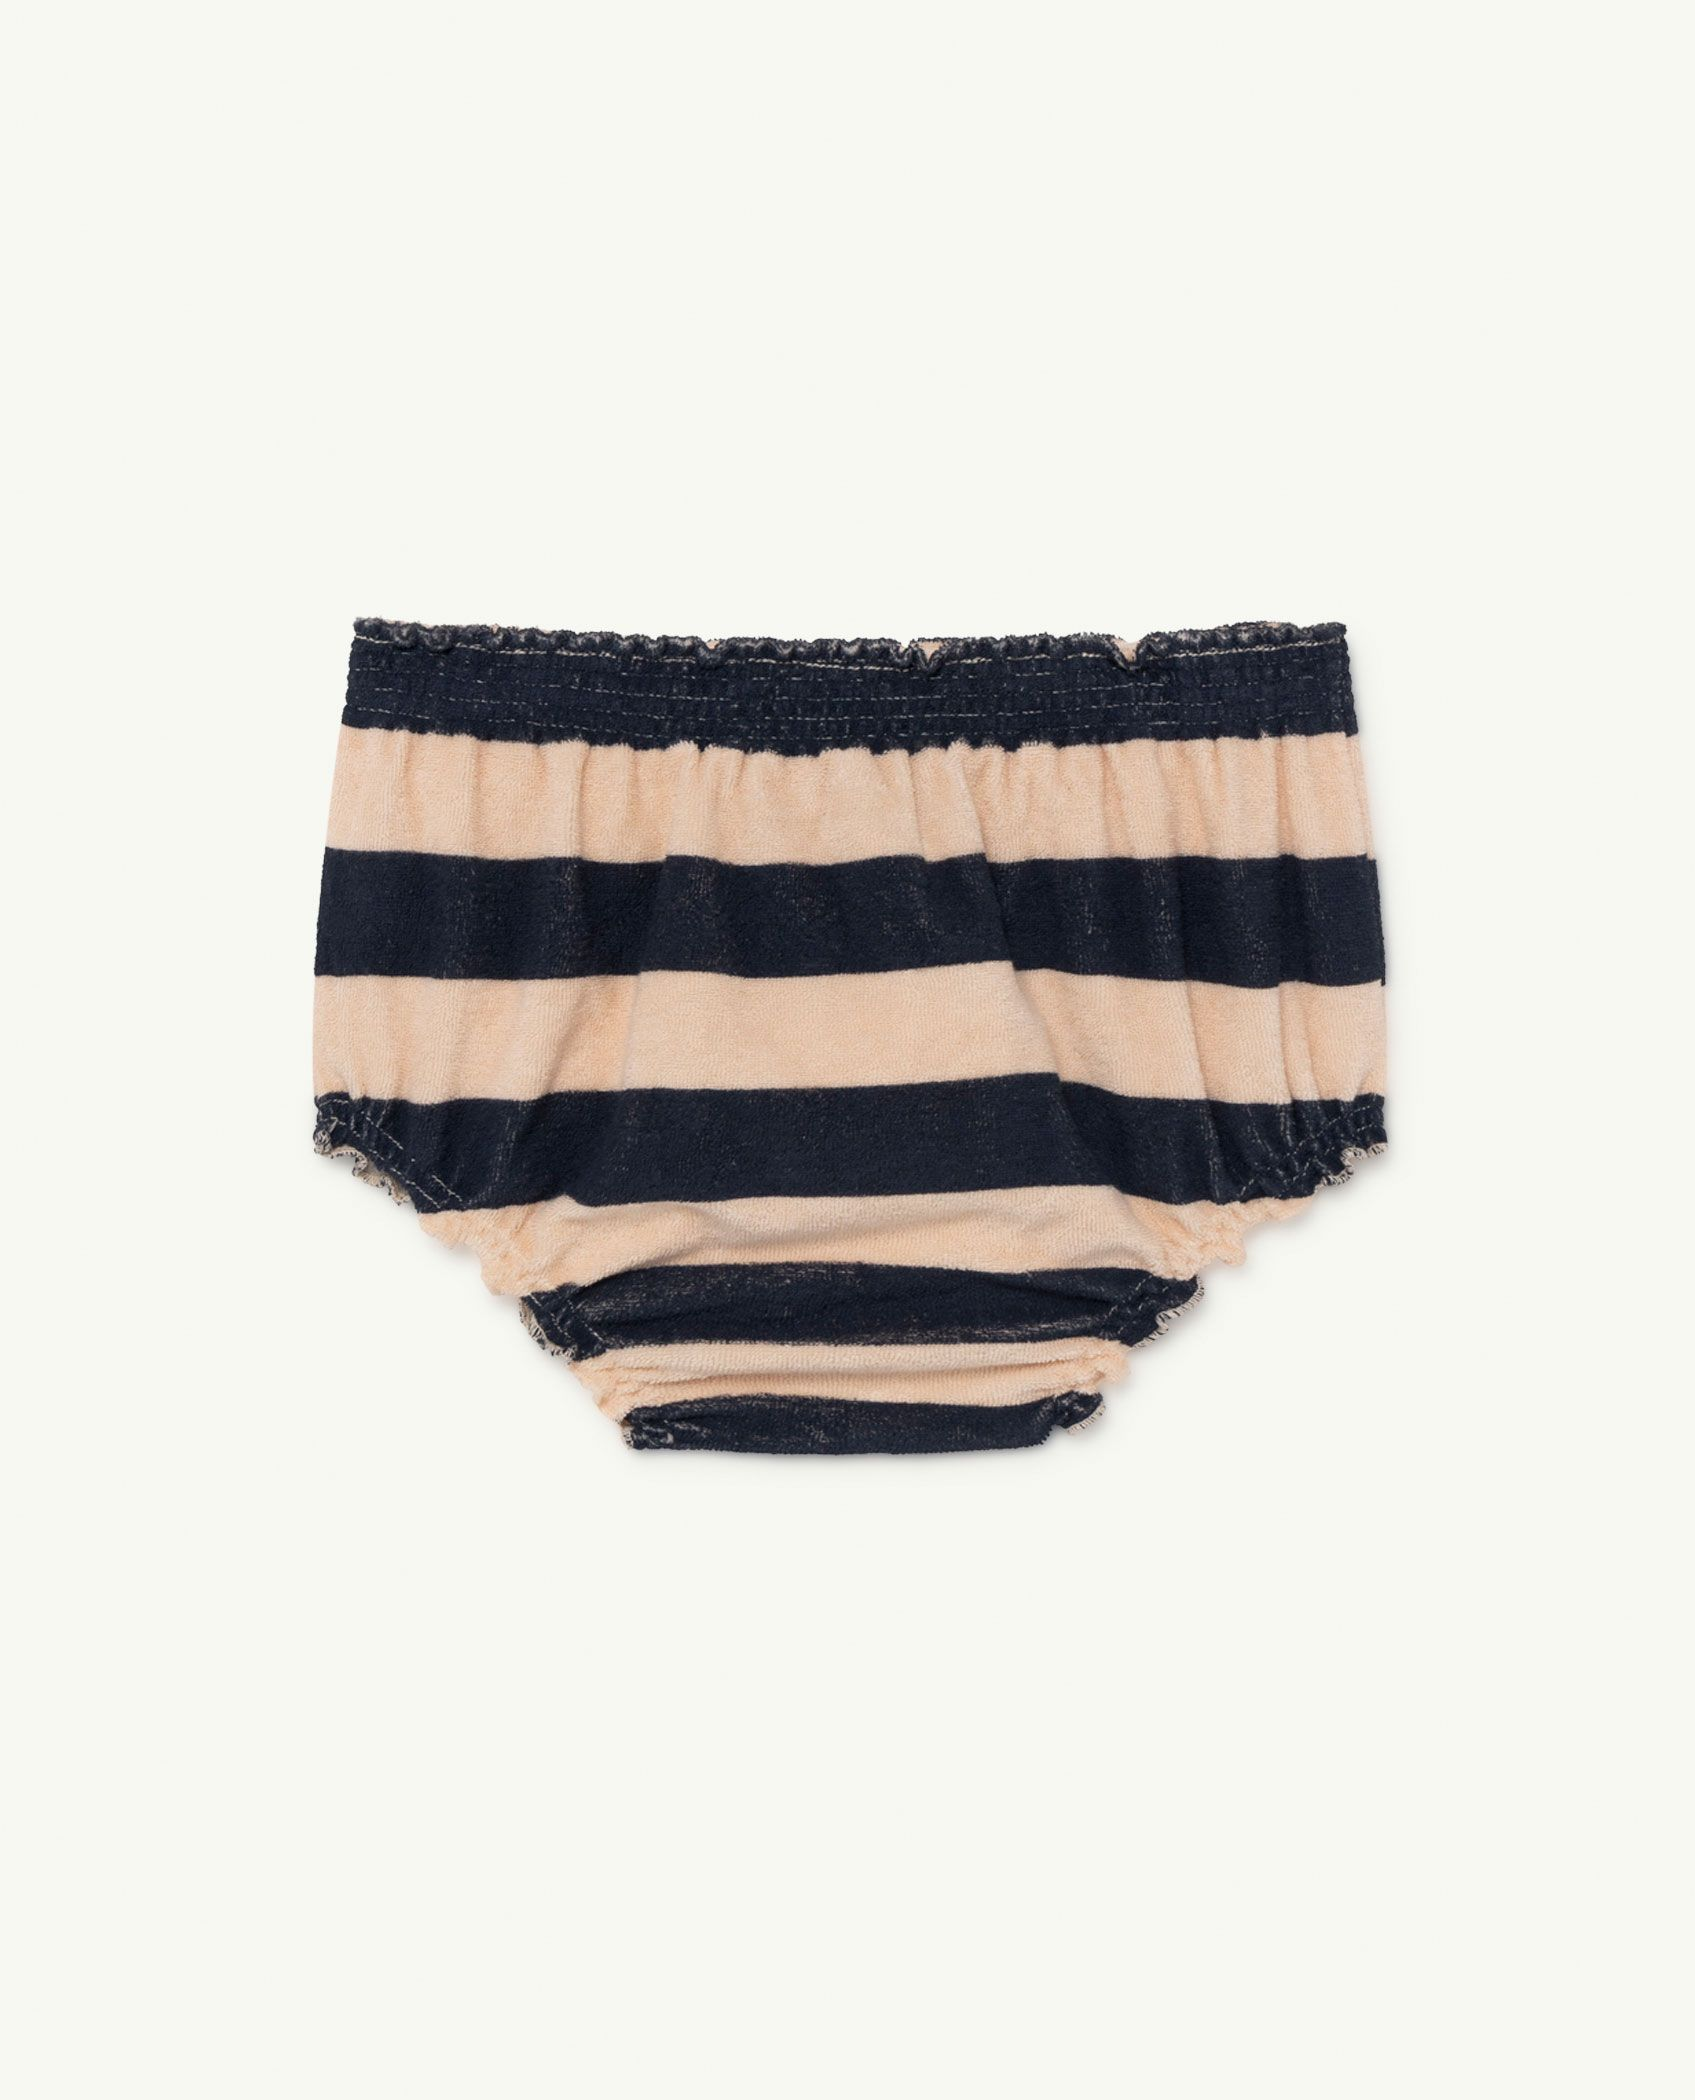 Peachy Stripes Toads Baby Culotte img-2